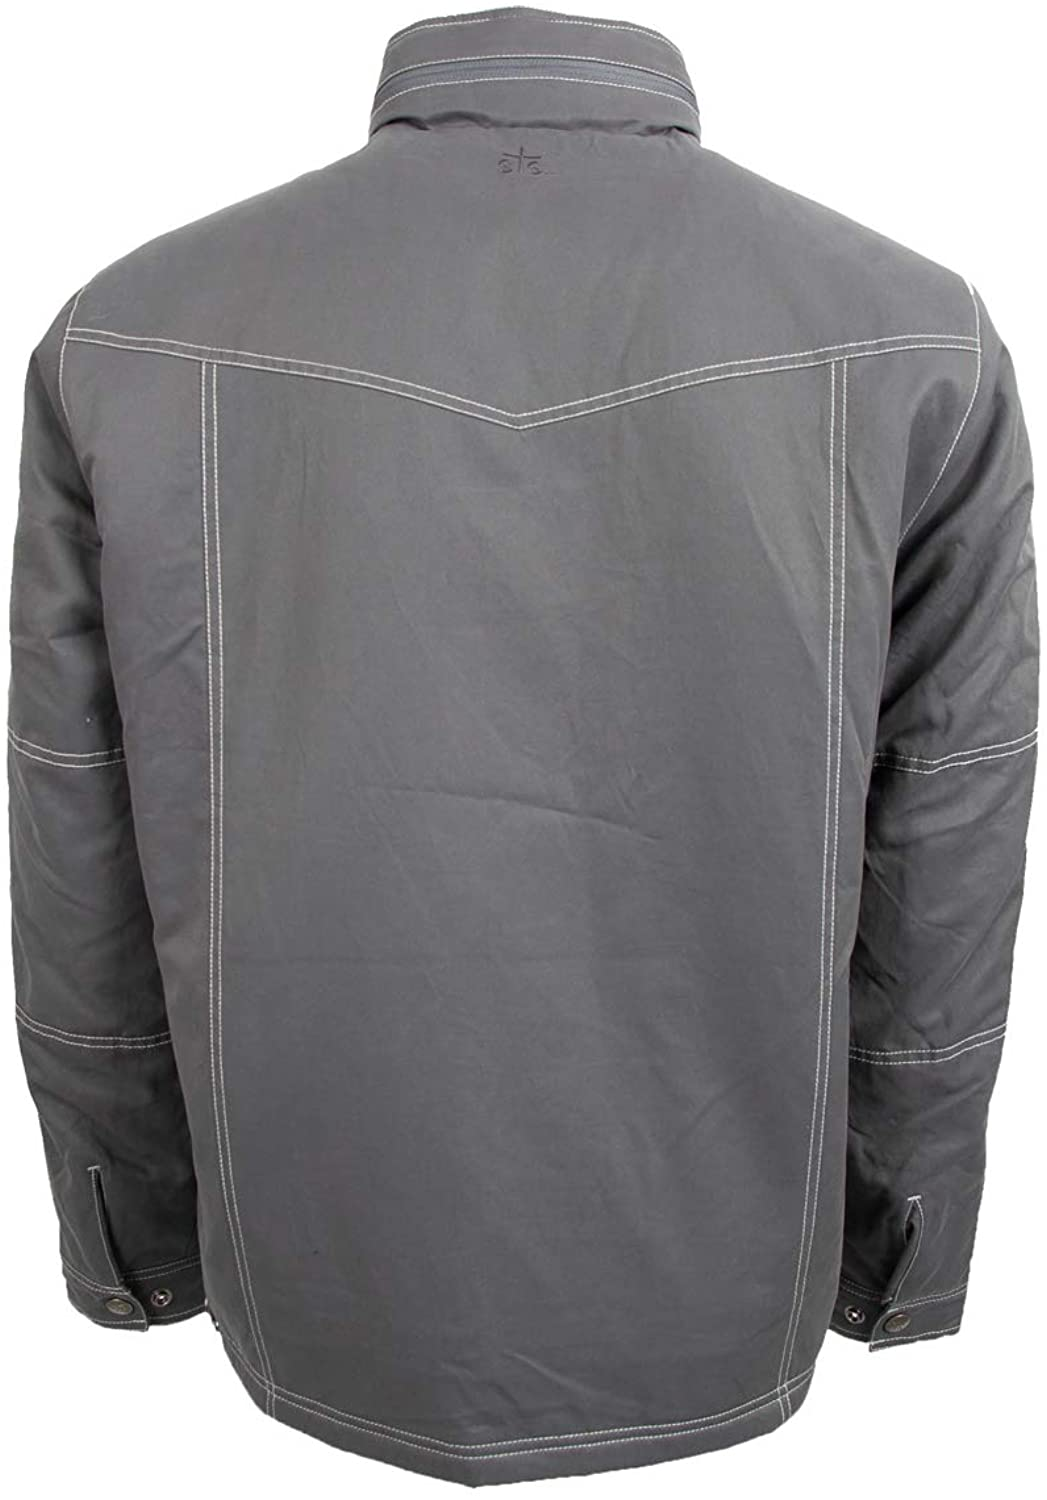 Sts Ranch Wear Mens STS Ryder Steele Grey Work Coat